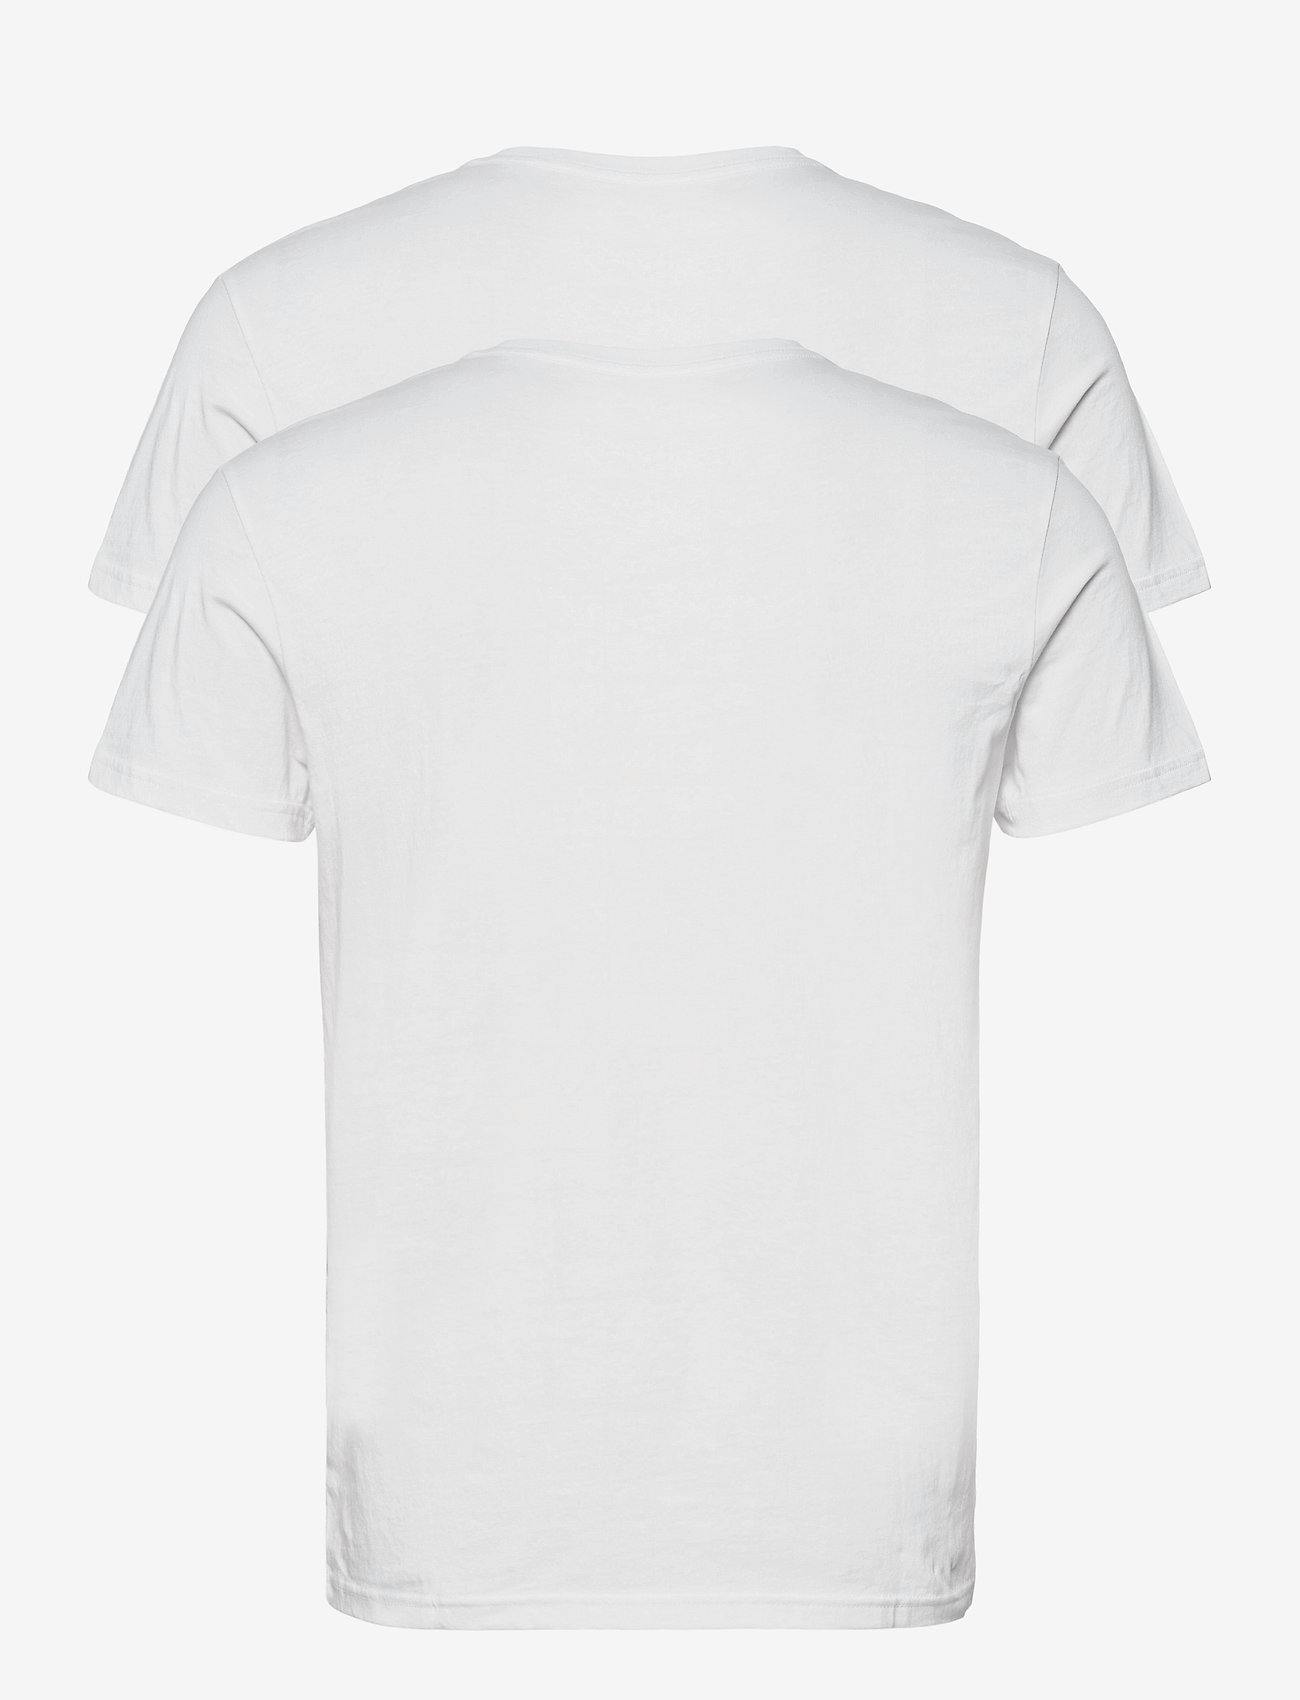 Lee Jeans - TWIN PACK CREW - basic t-shirts - white - 1